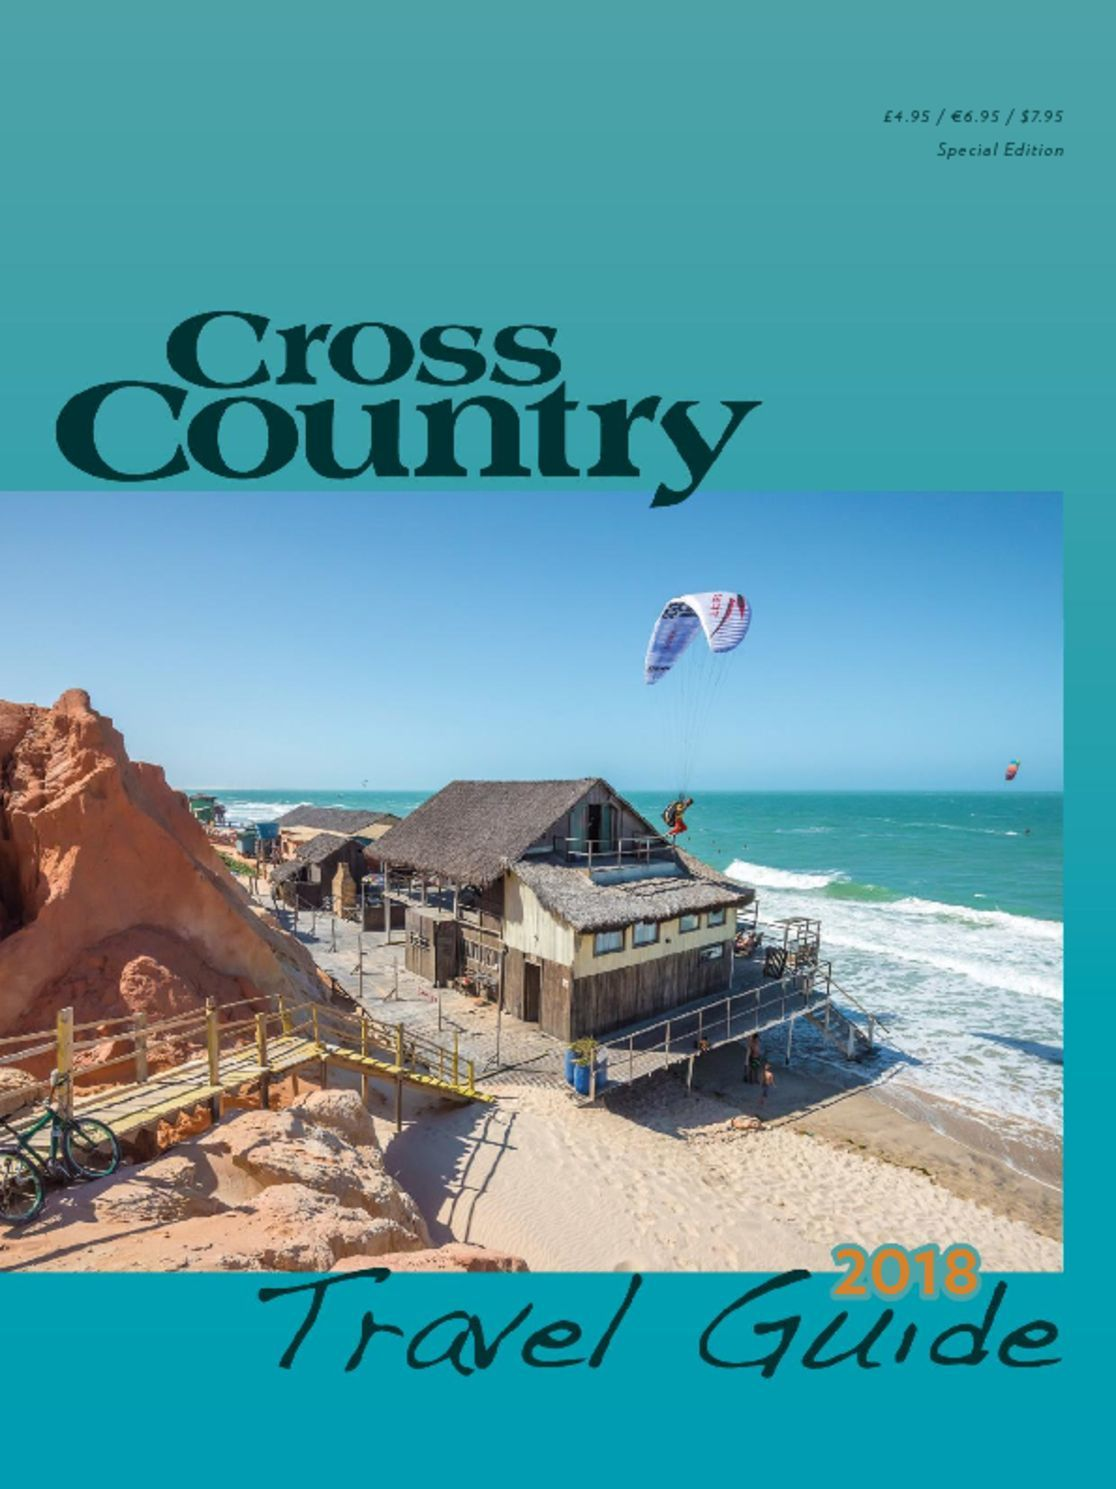 Cross Country Travel Guide Digital